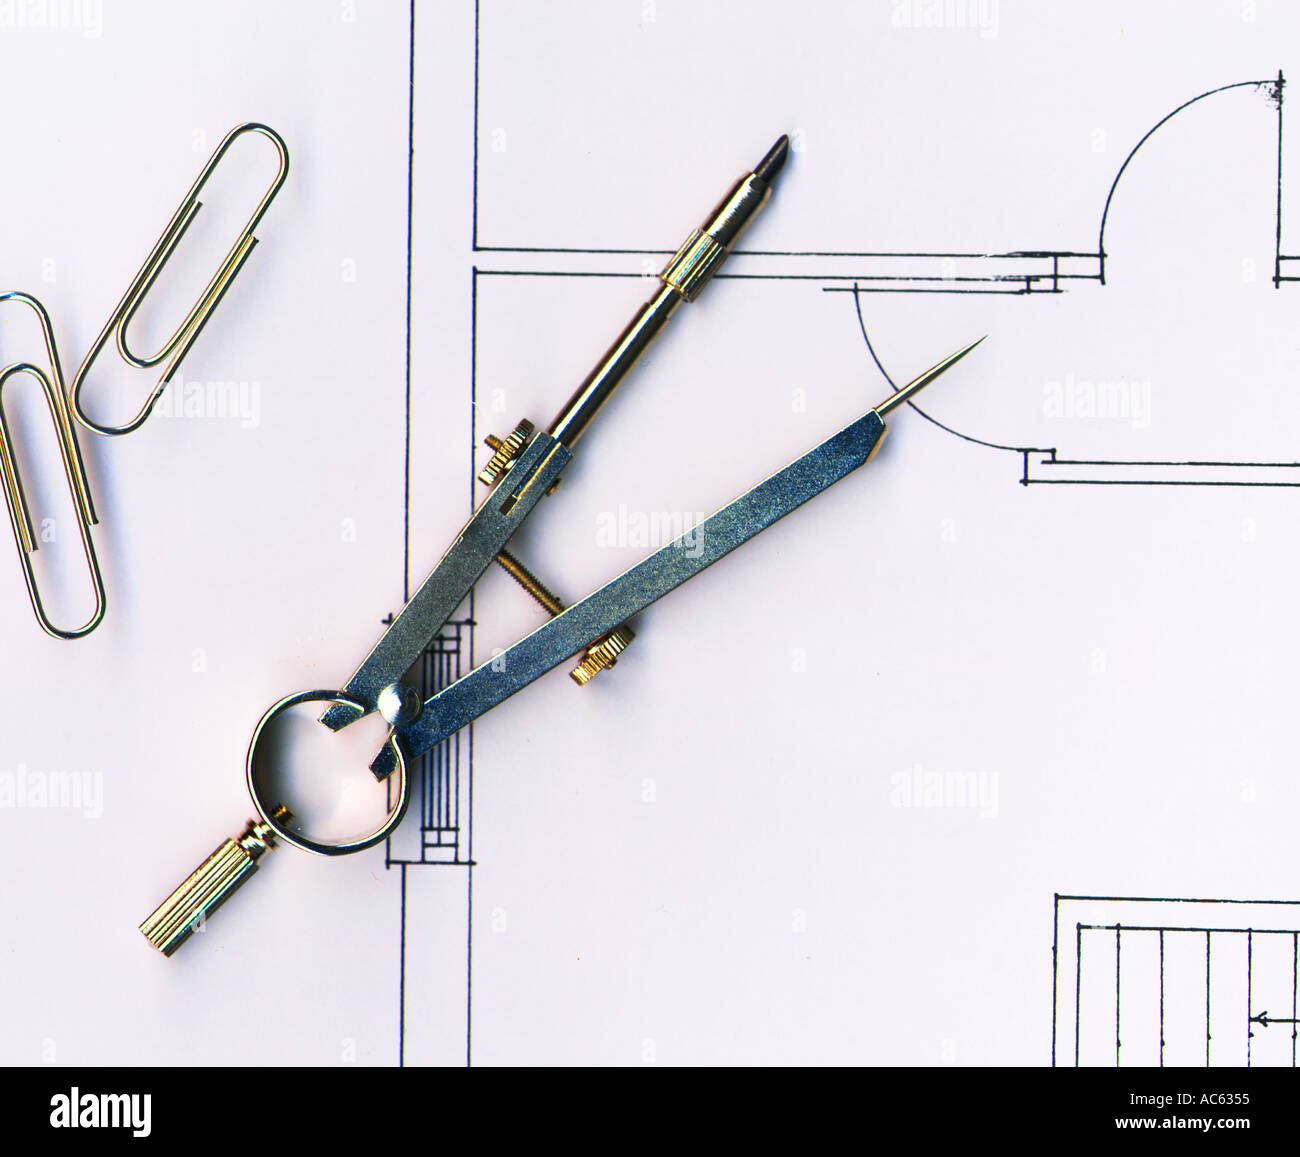 Architects Tools Stock Photo Royalty Free Image 811861